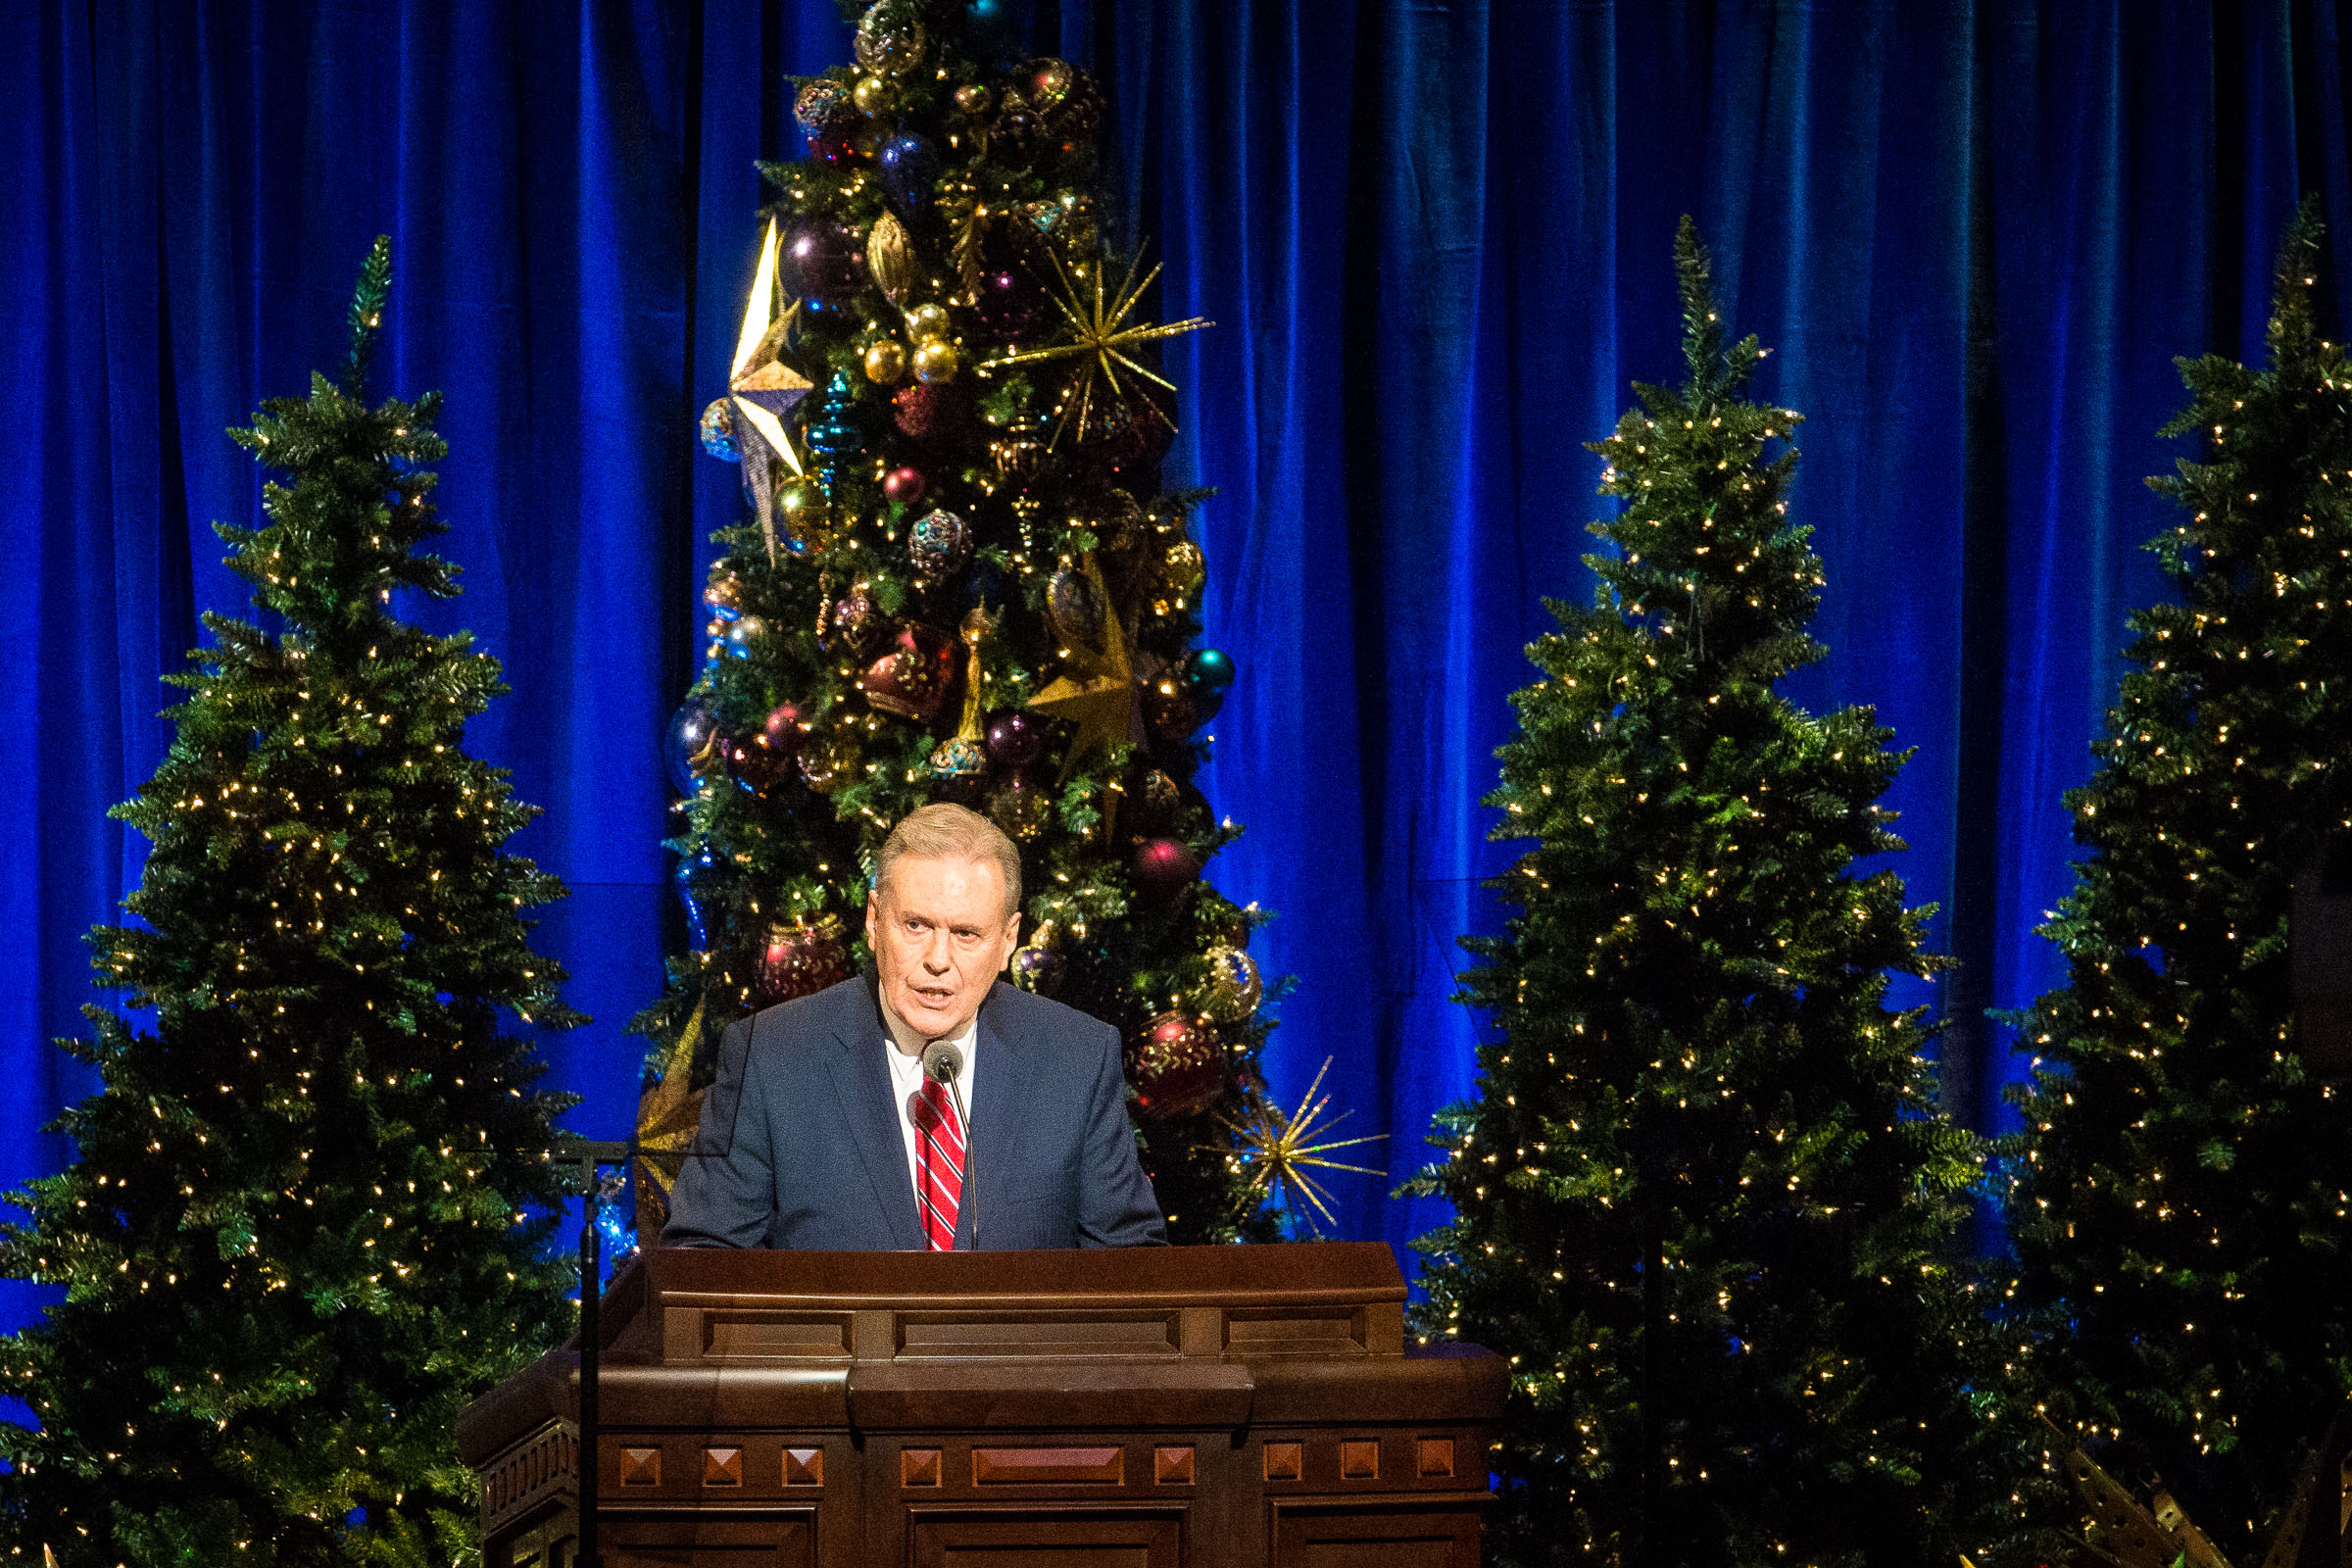 Elder Terence M. Vinson of the Presidency of the Seventy speaks during the First Presidency's Christmas Devotional in the Conference Center in Salt Lake City on Sunday, Dec. 2, 2018.